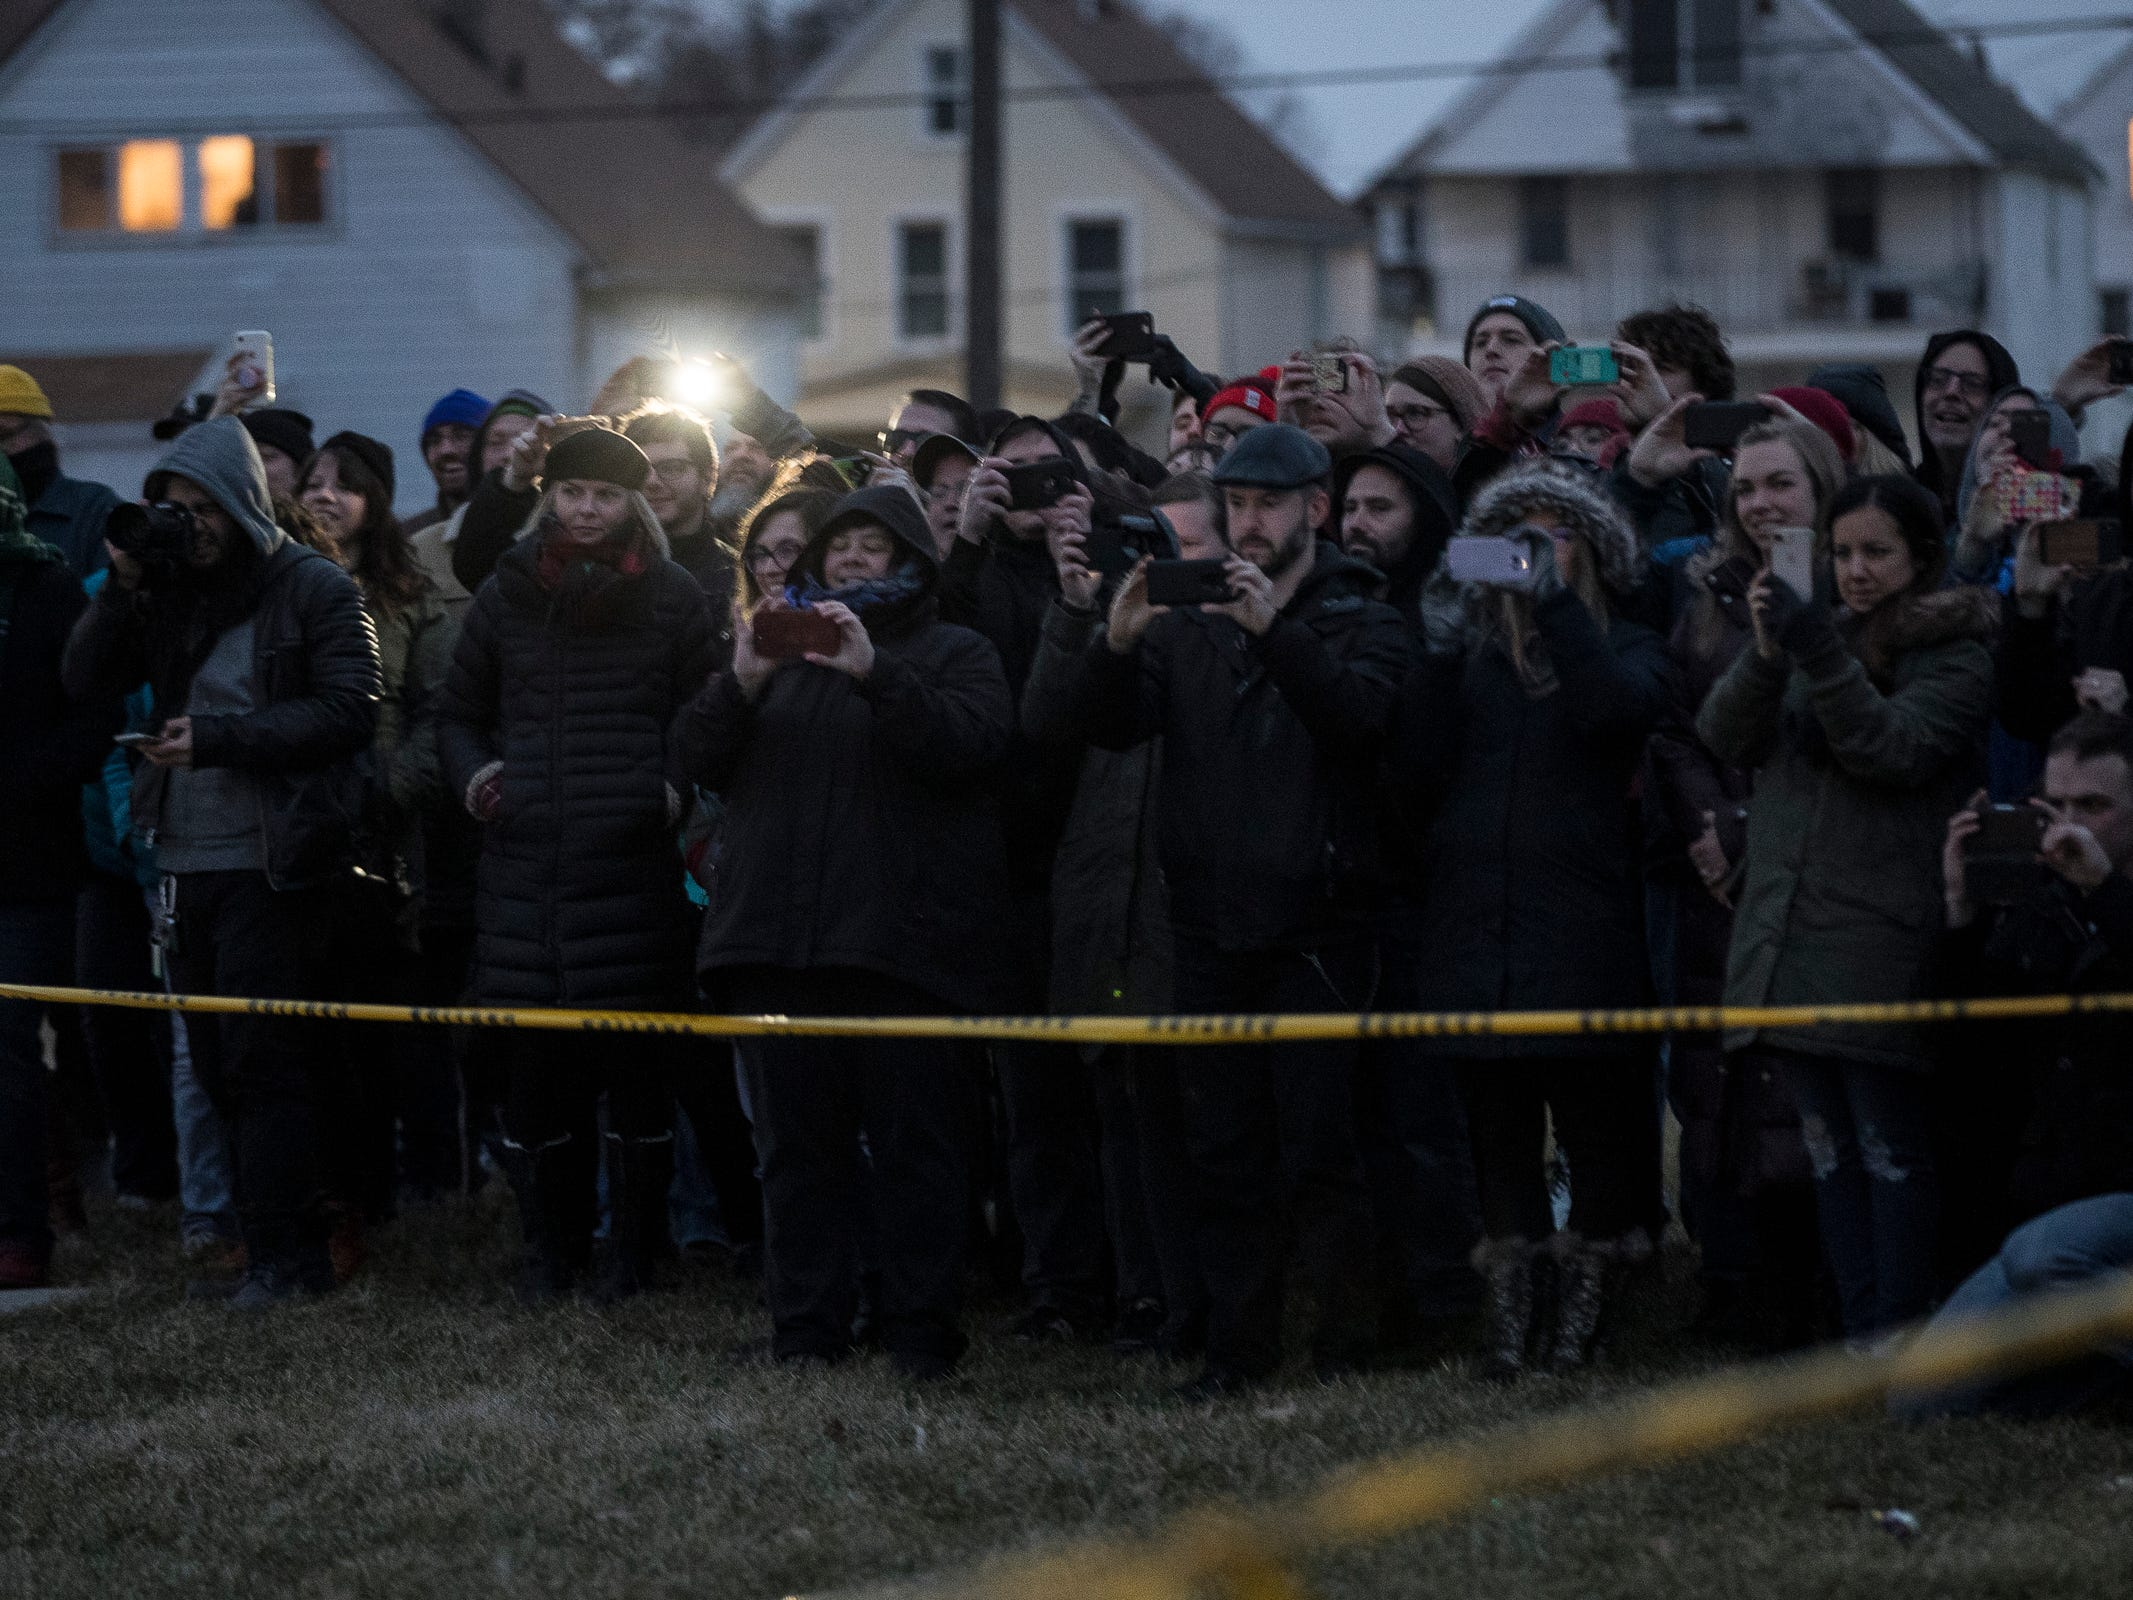 Spectators get ready to watch stuntman Schuyler White attempts to break the World Record of most consecutive jumping jacks with full-body burn at the Veterans Park in Hamtramck, Saturday, Feb. 23, 2019. White finishes with 12 jumps.